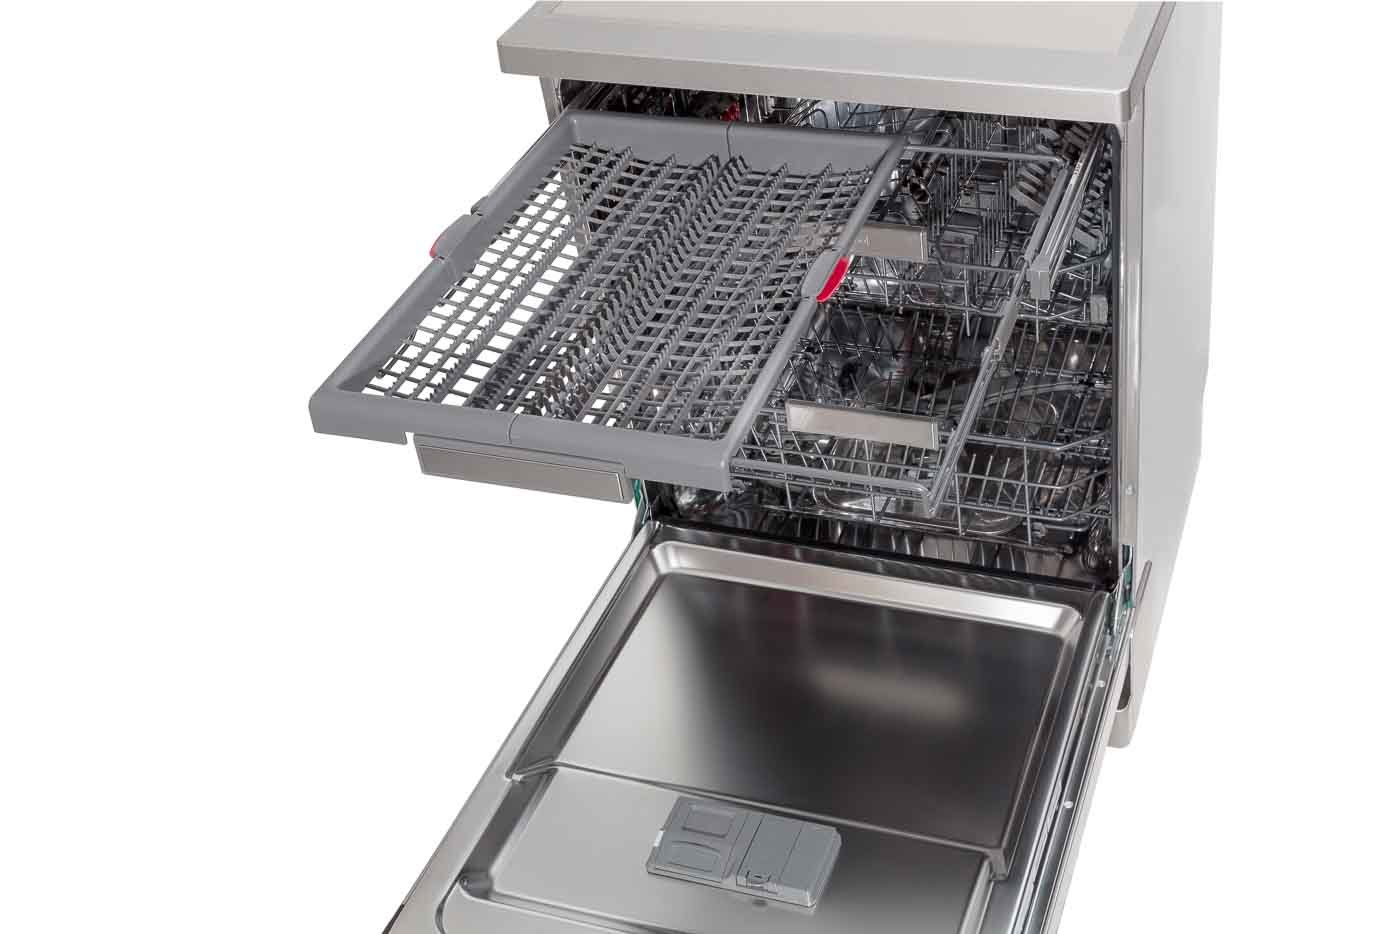 WFO3S23XAUS -45 angle internal close up of top draw pulled out including accessories - Cutlery rack open Right side